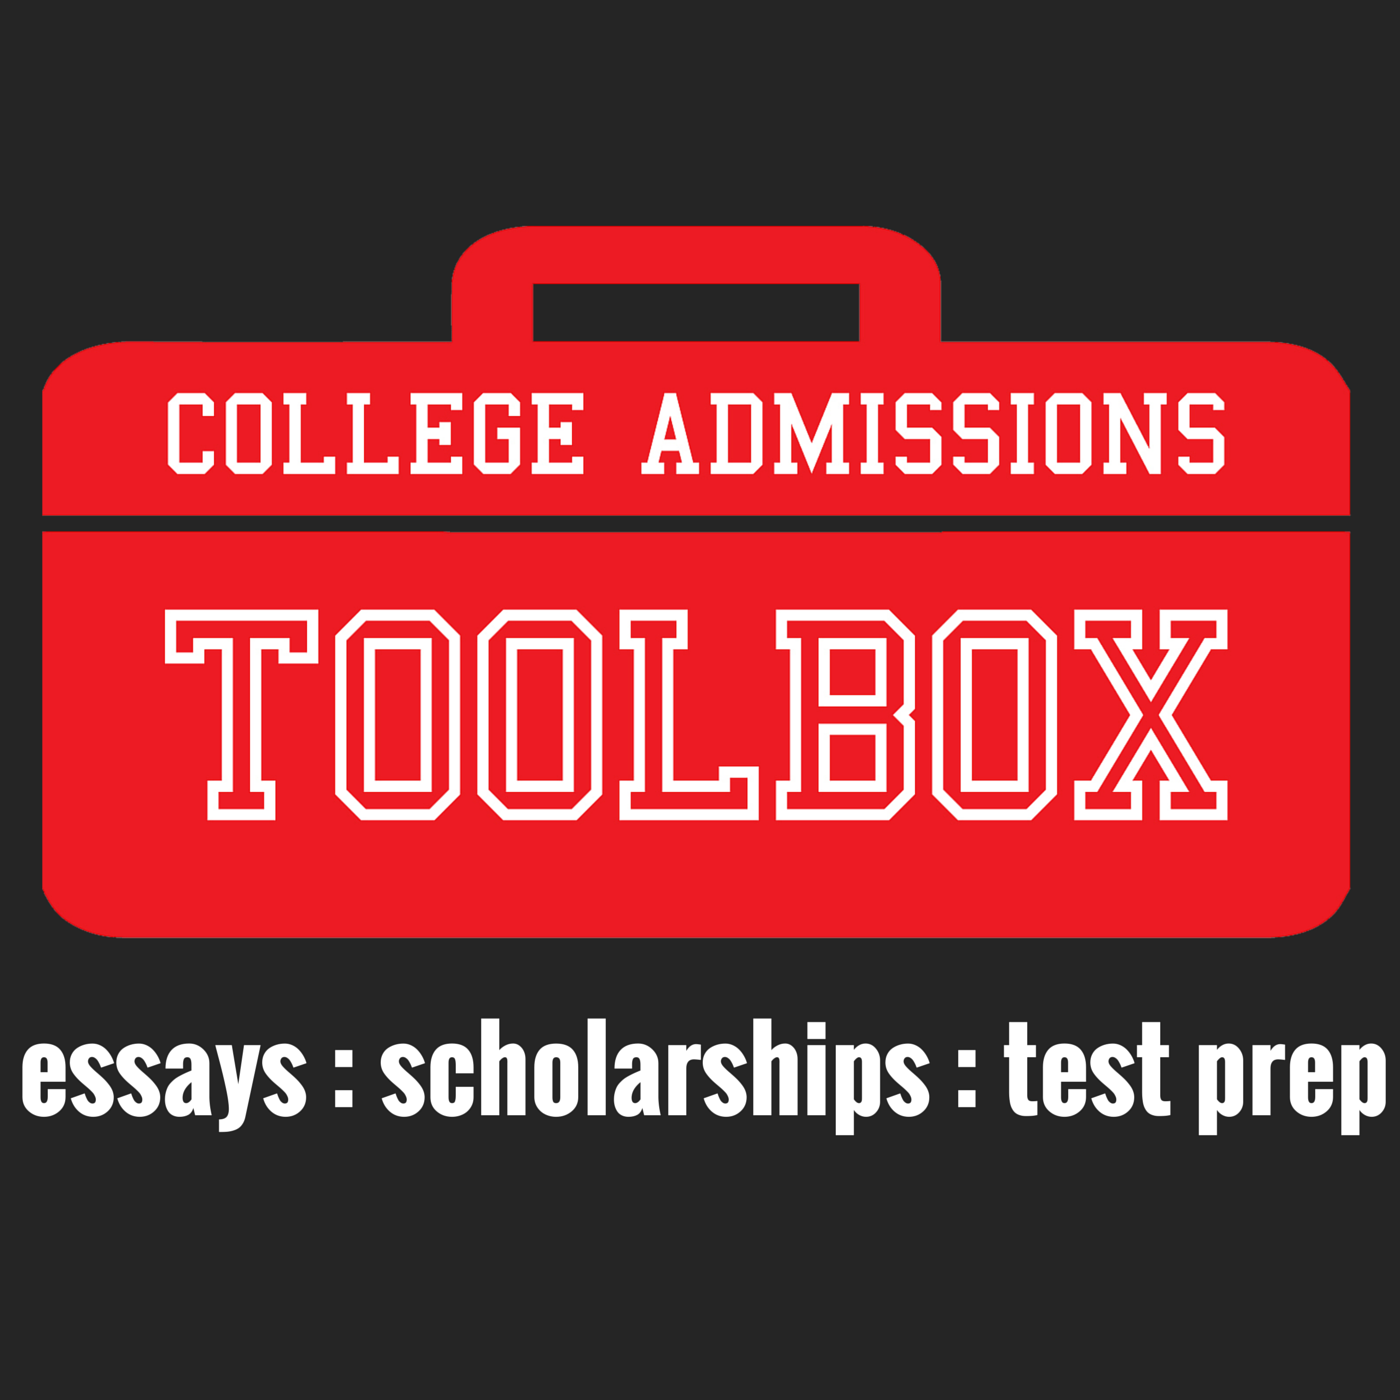 006 College Essay Advisors Example The Admissions Toolbox Podcast Applications Essays Review To Wondrous Upenn Duke Usc Full